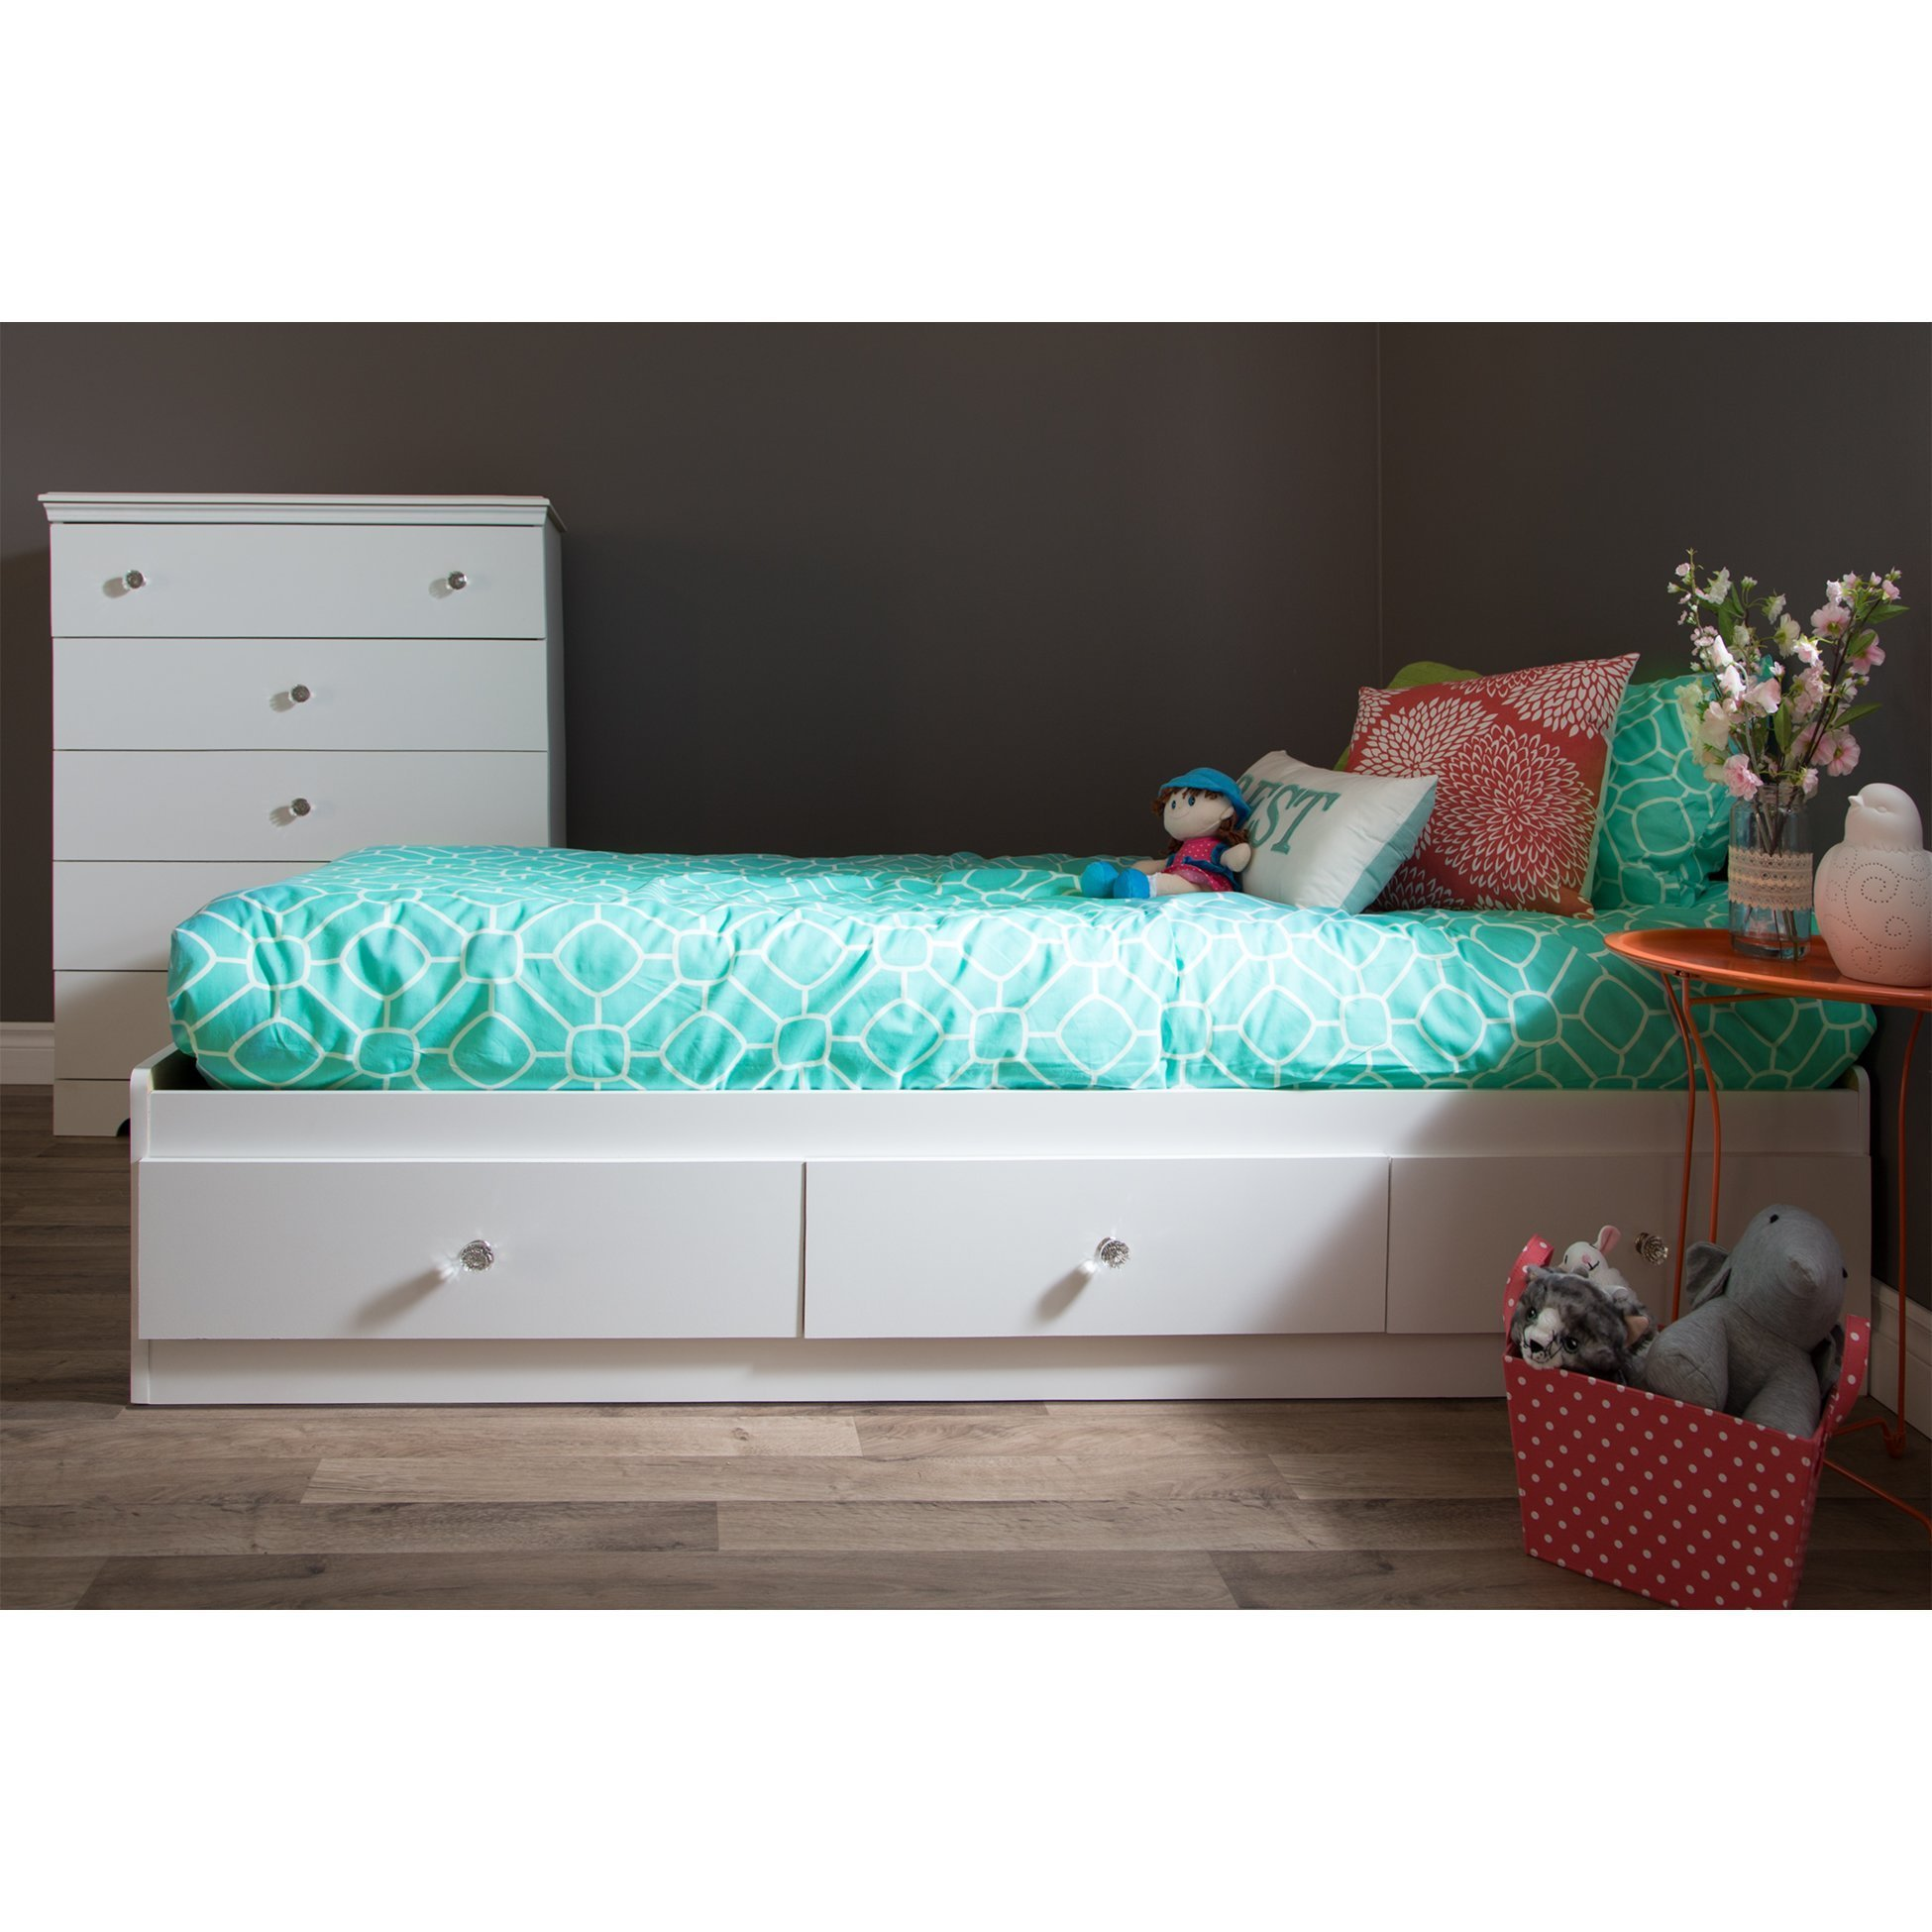 Best South Shore Crystal Twin Mate S Bed With Storage Reviews With Pictures